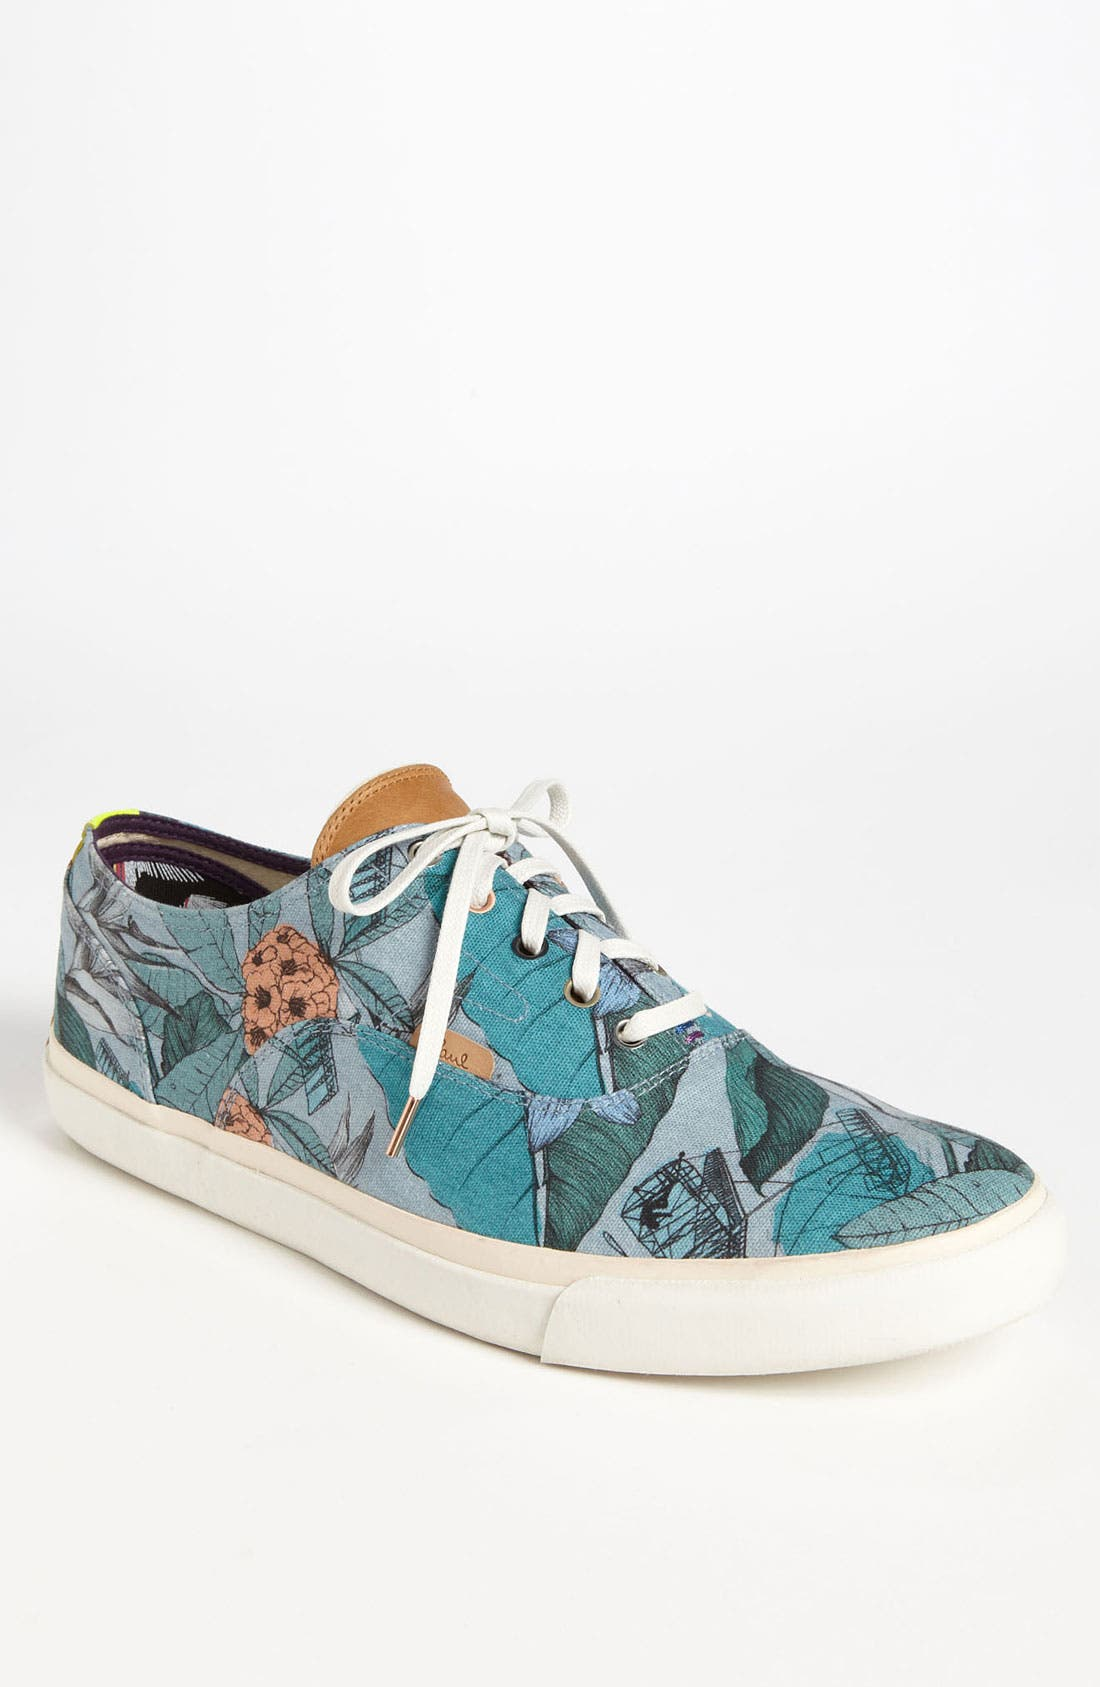 Main Image - Paul Smith 'Balfour' Print Sneaker